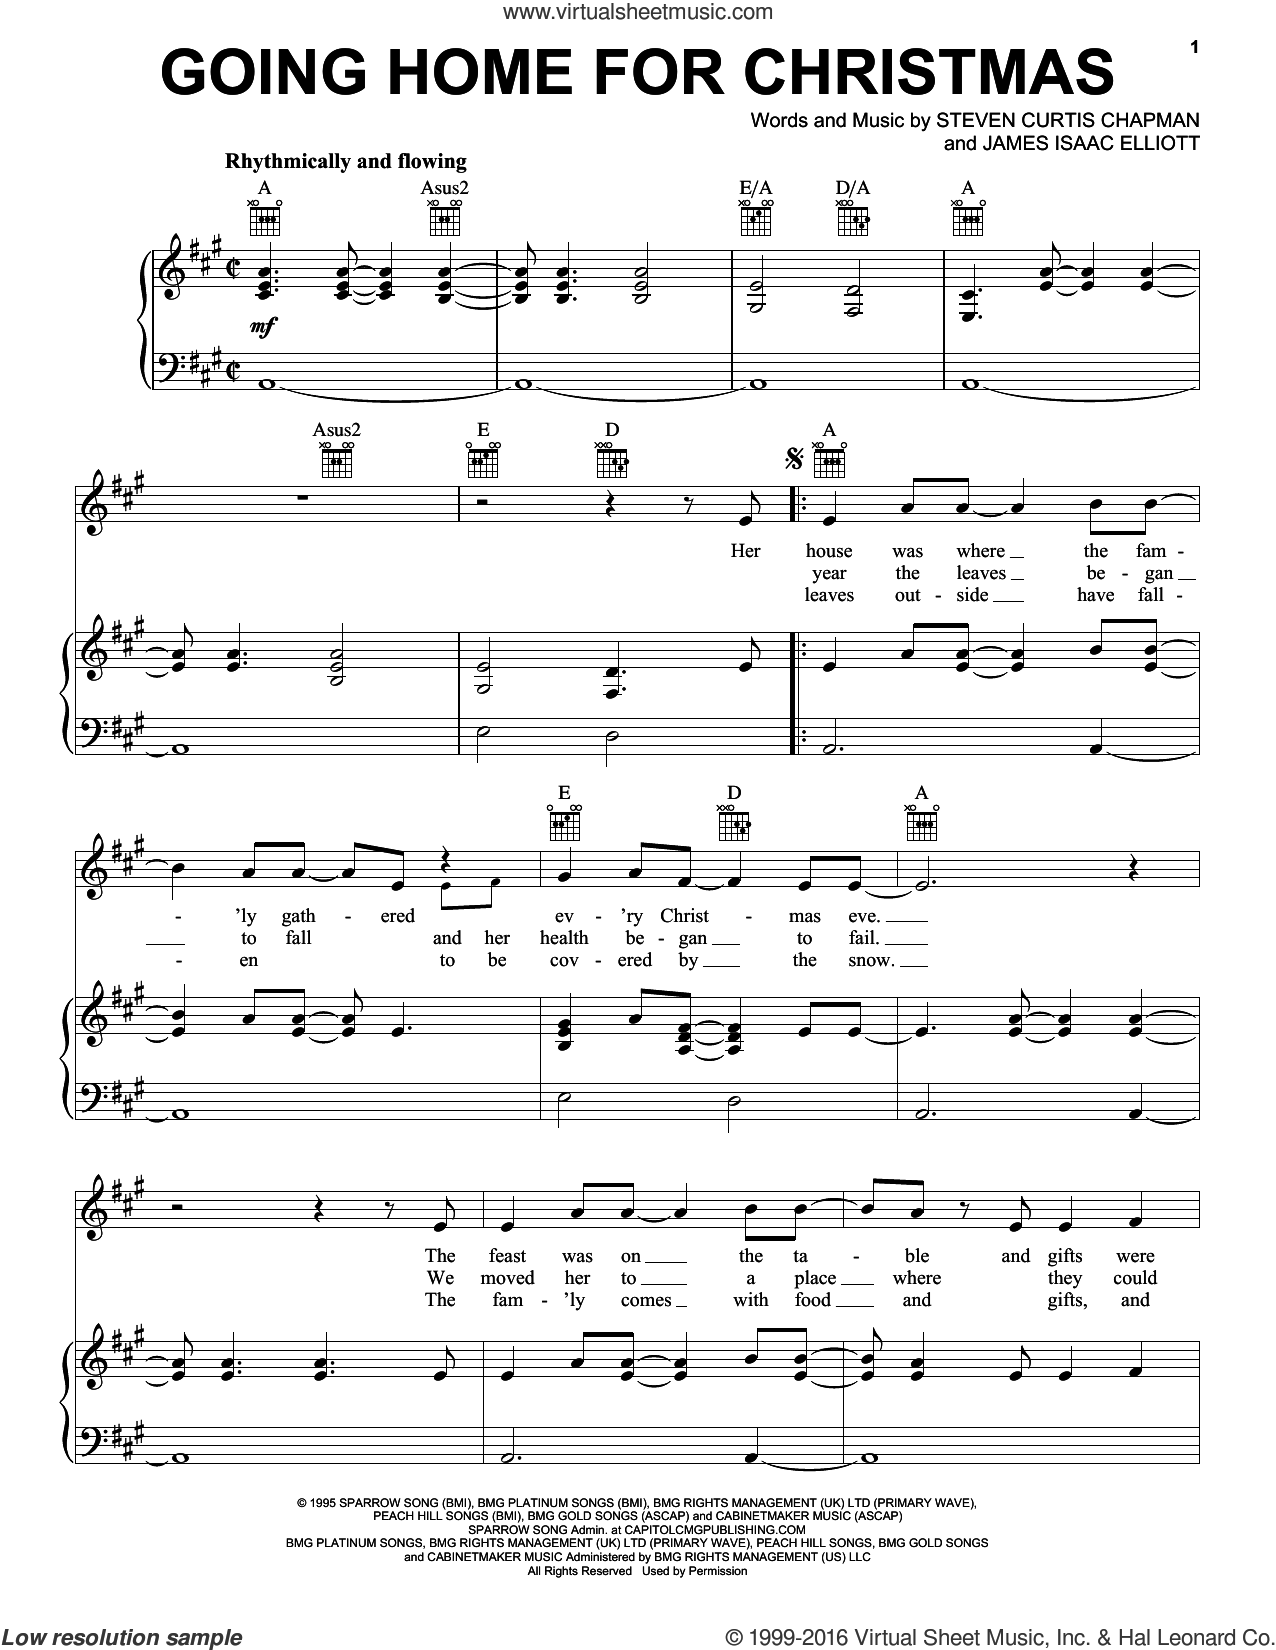 Going Home For Christmas sheet music for voice, piano or guitar by Steven Curtis Chapman and James Isaac Elliott, intermediate skill level